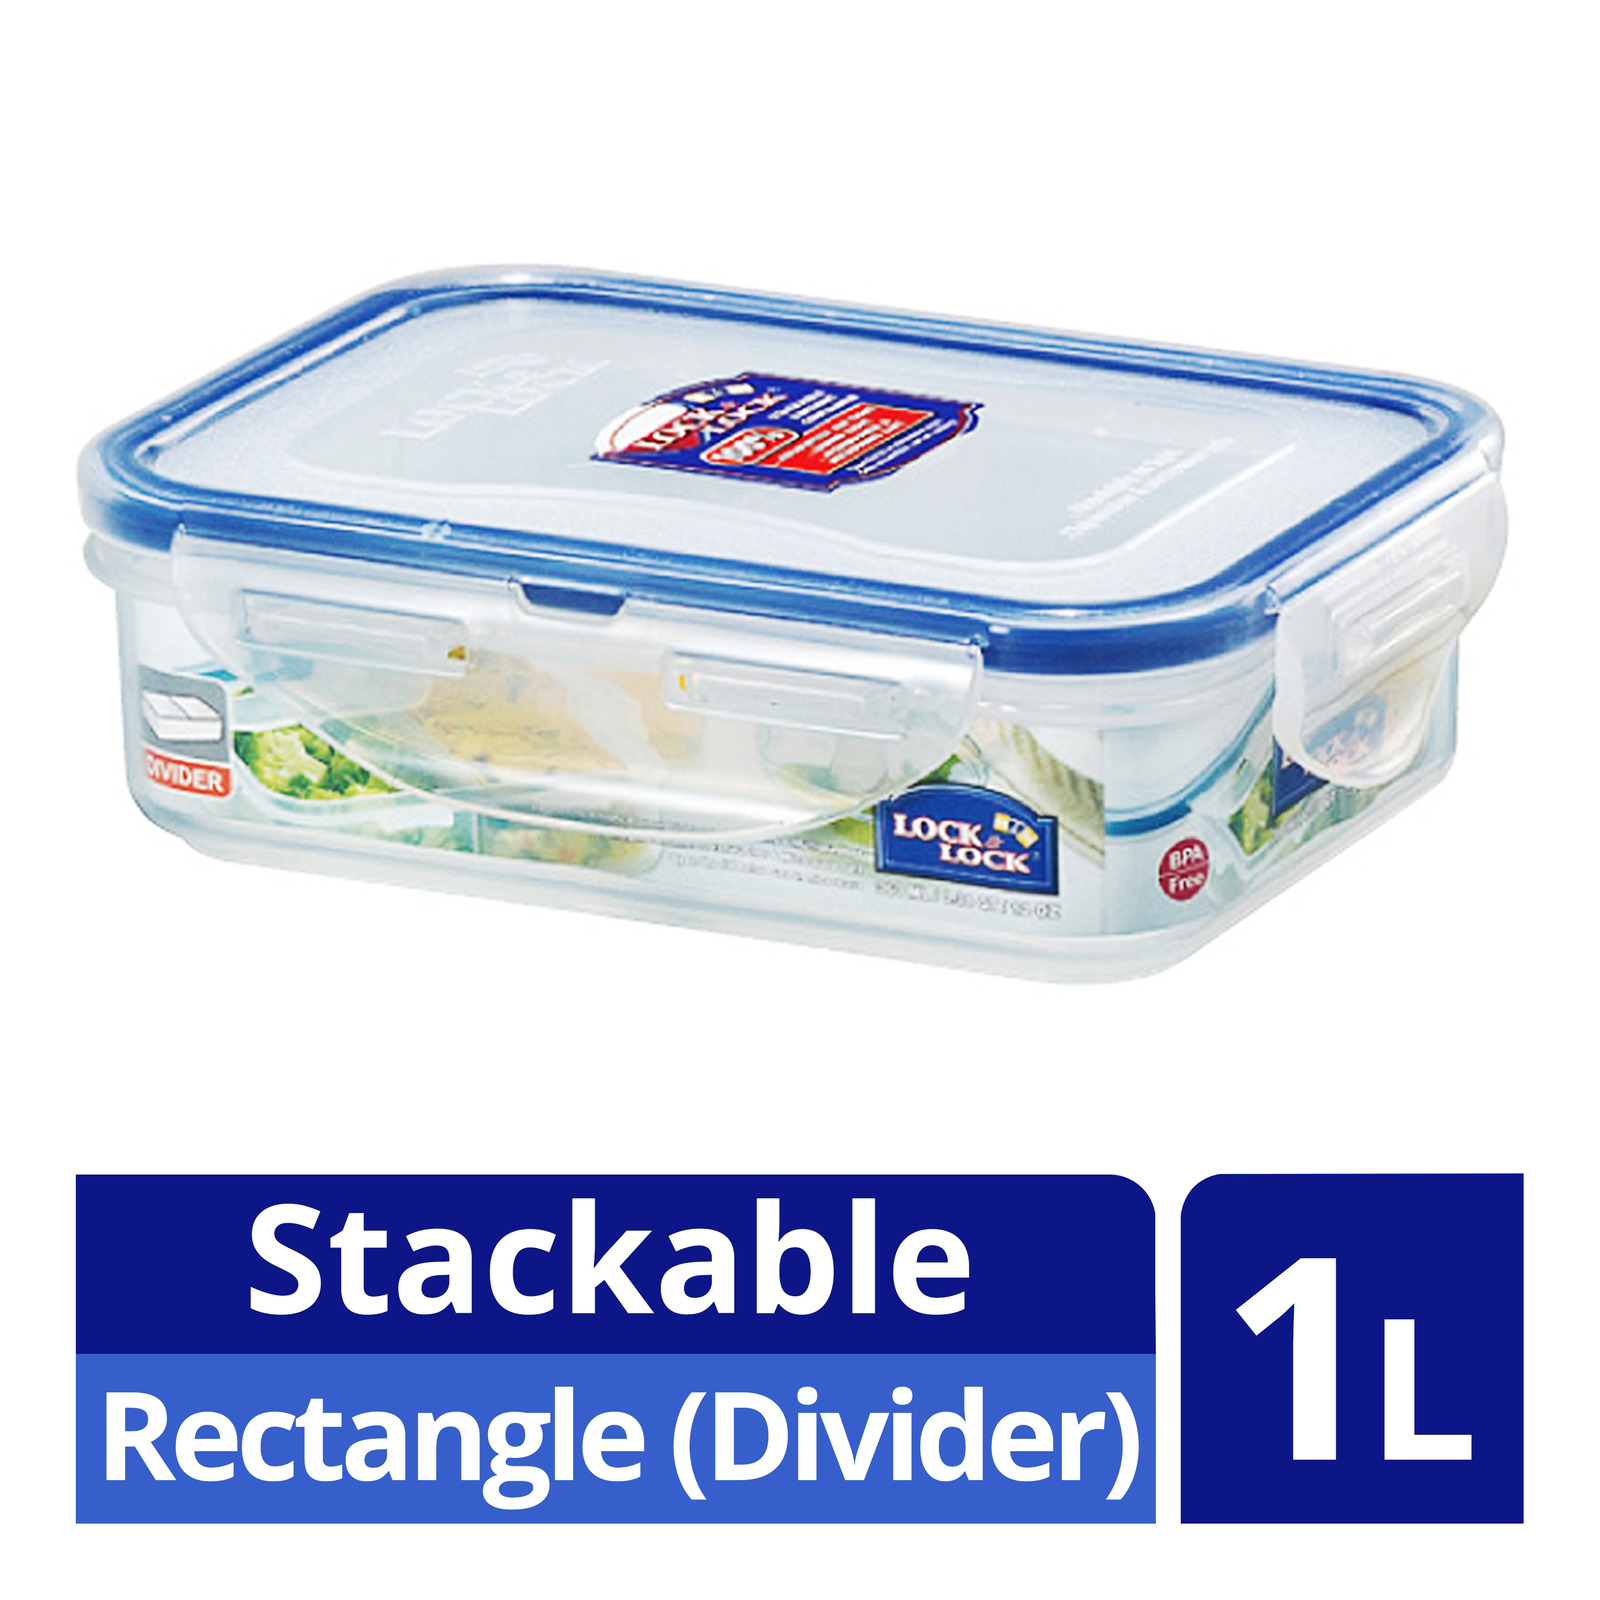 Lock & Lock Stackable Airtight Container - Rectangle (Divider)